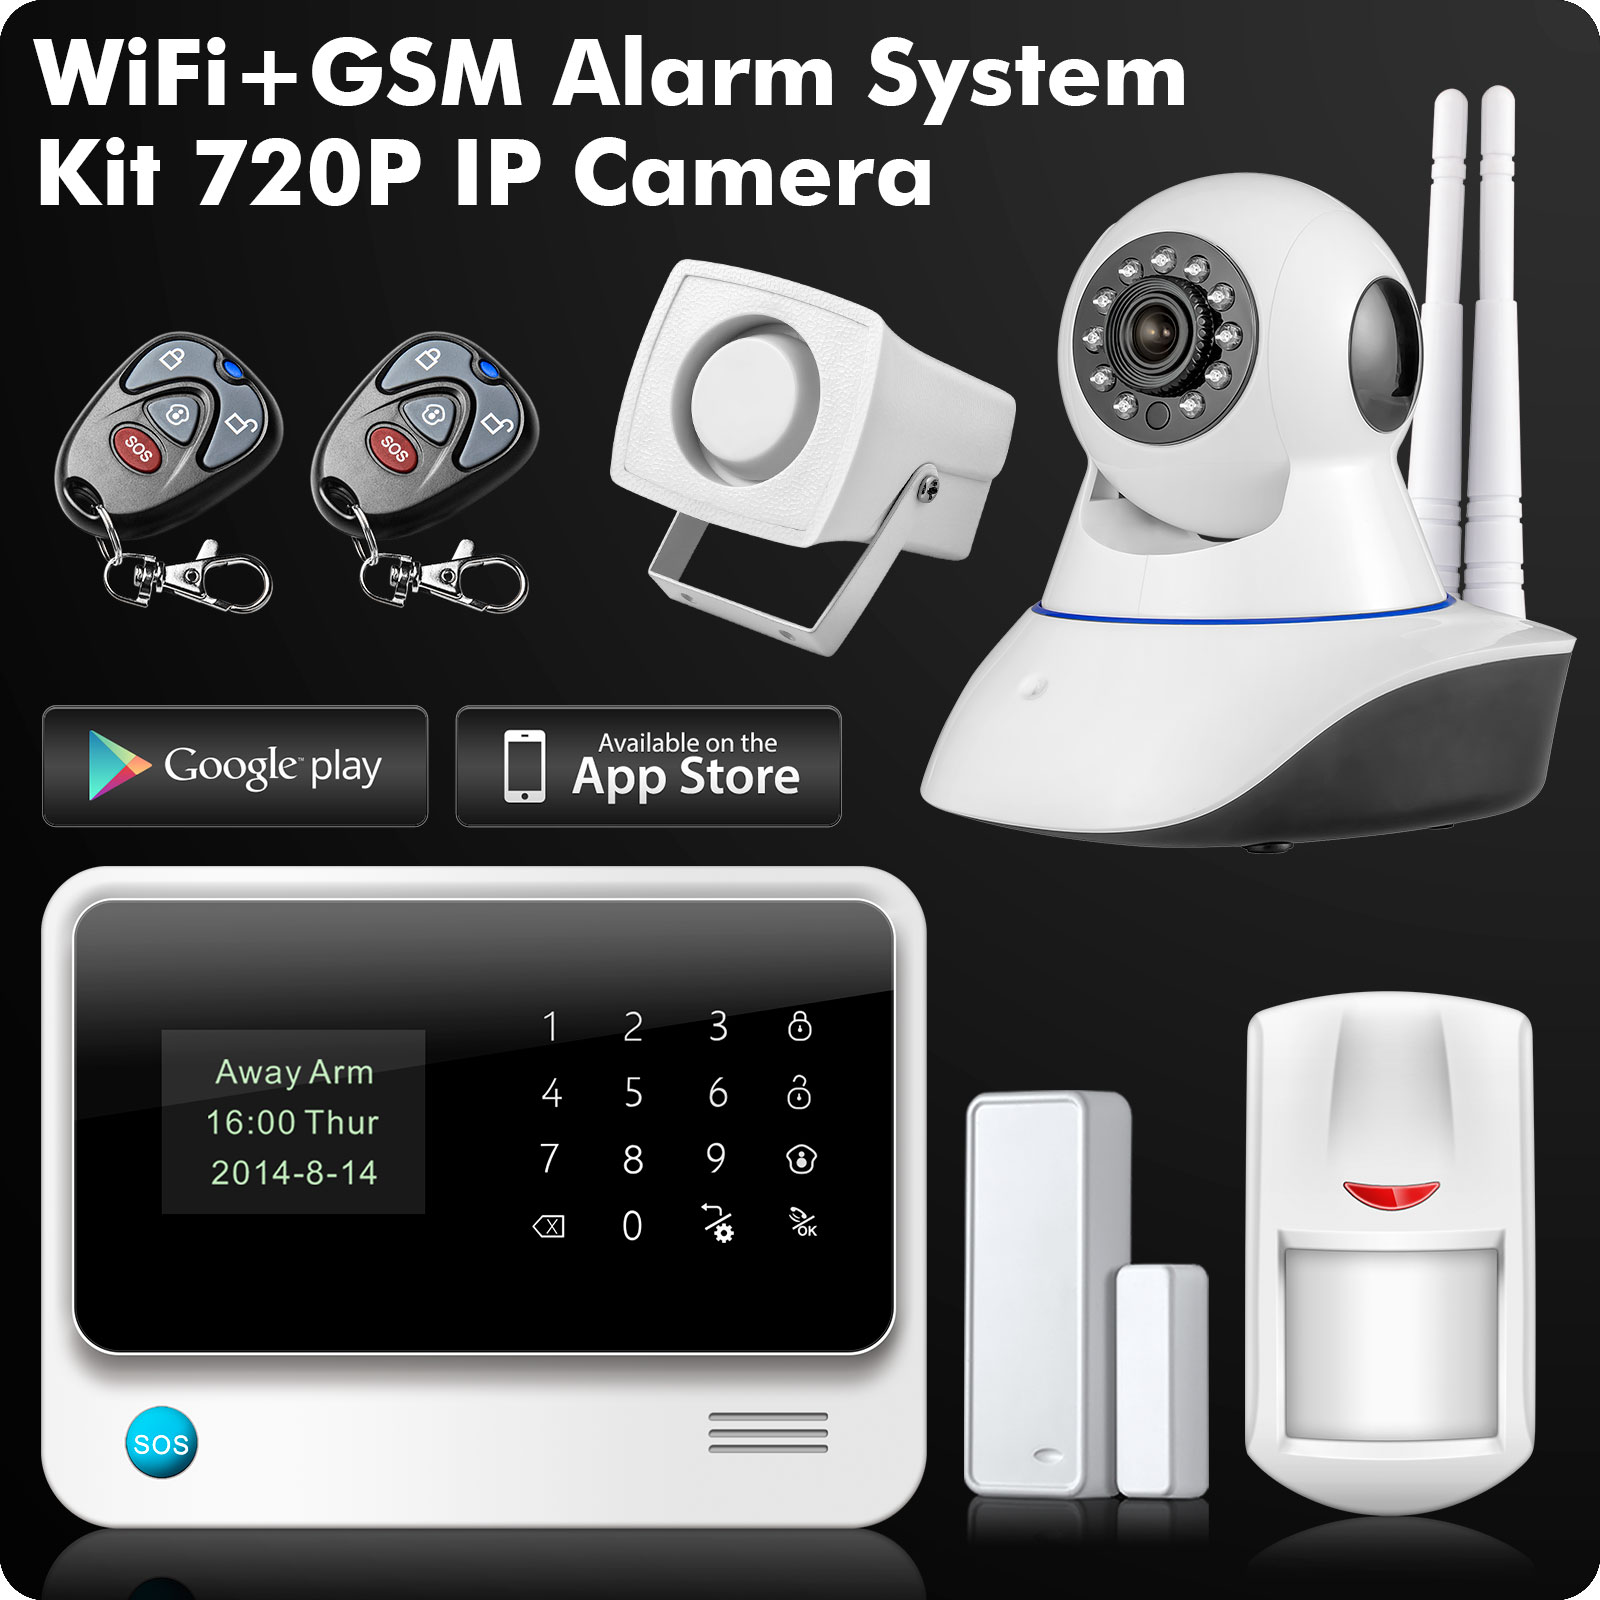 G90B 2.4G WiFi GSM GPRS SMS Wireless Home Security Alarm System IOS Android APP Remote Control Detector Sensor-in Alarm System Kits from Security & Protection